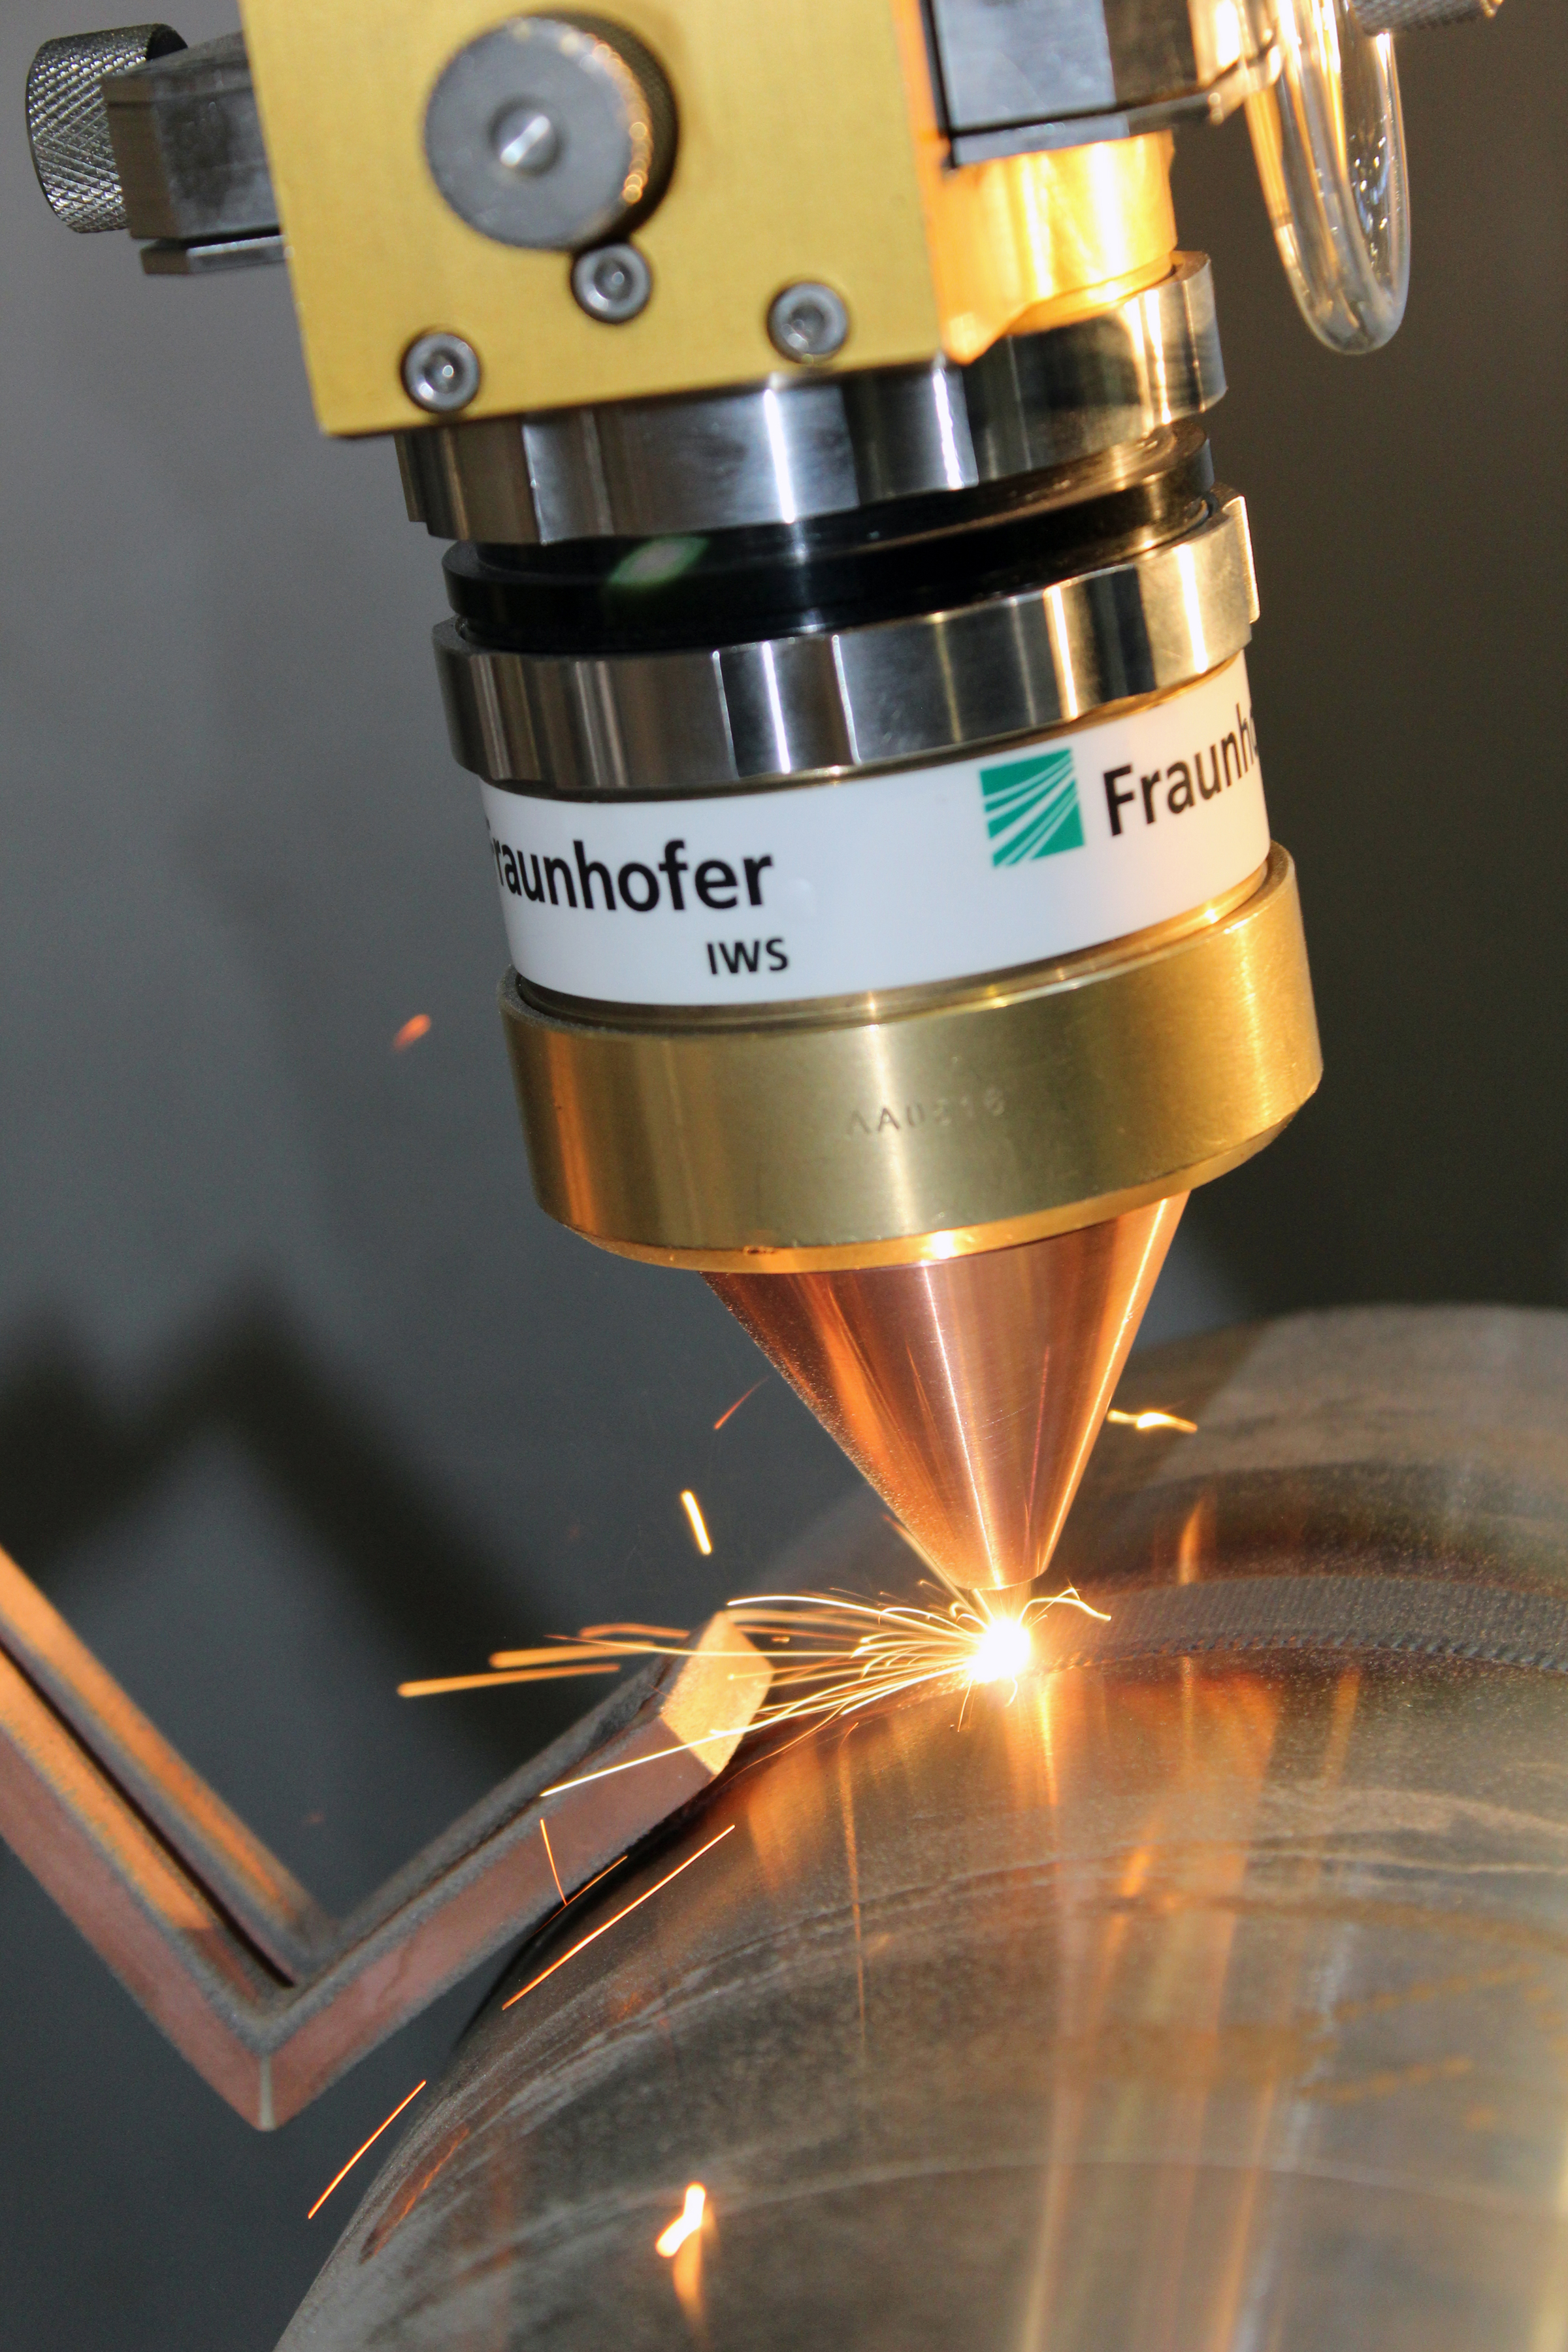 Laser buildup welding with a COAX laser processing head